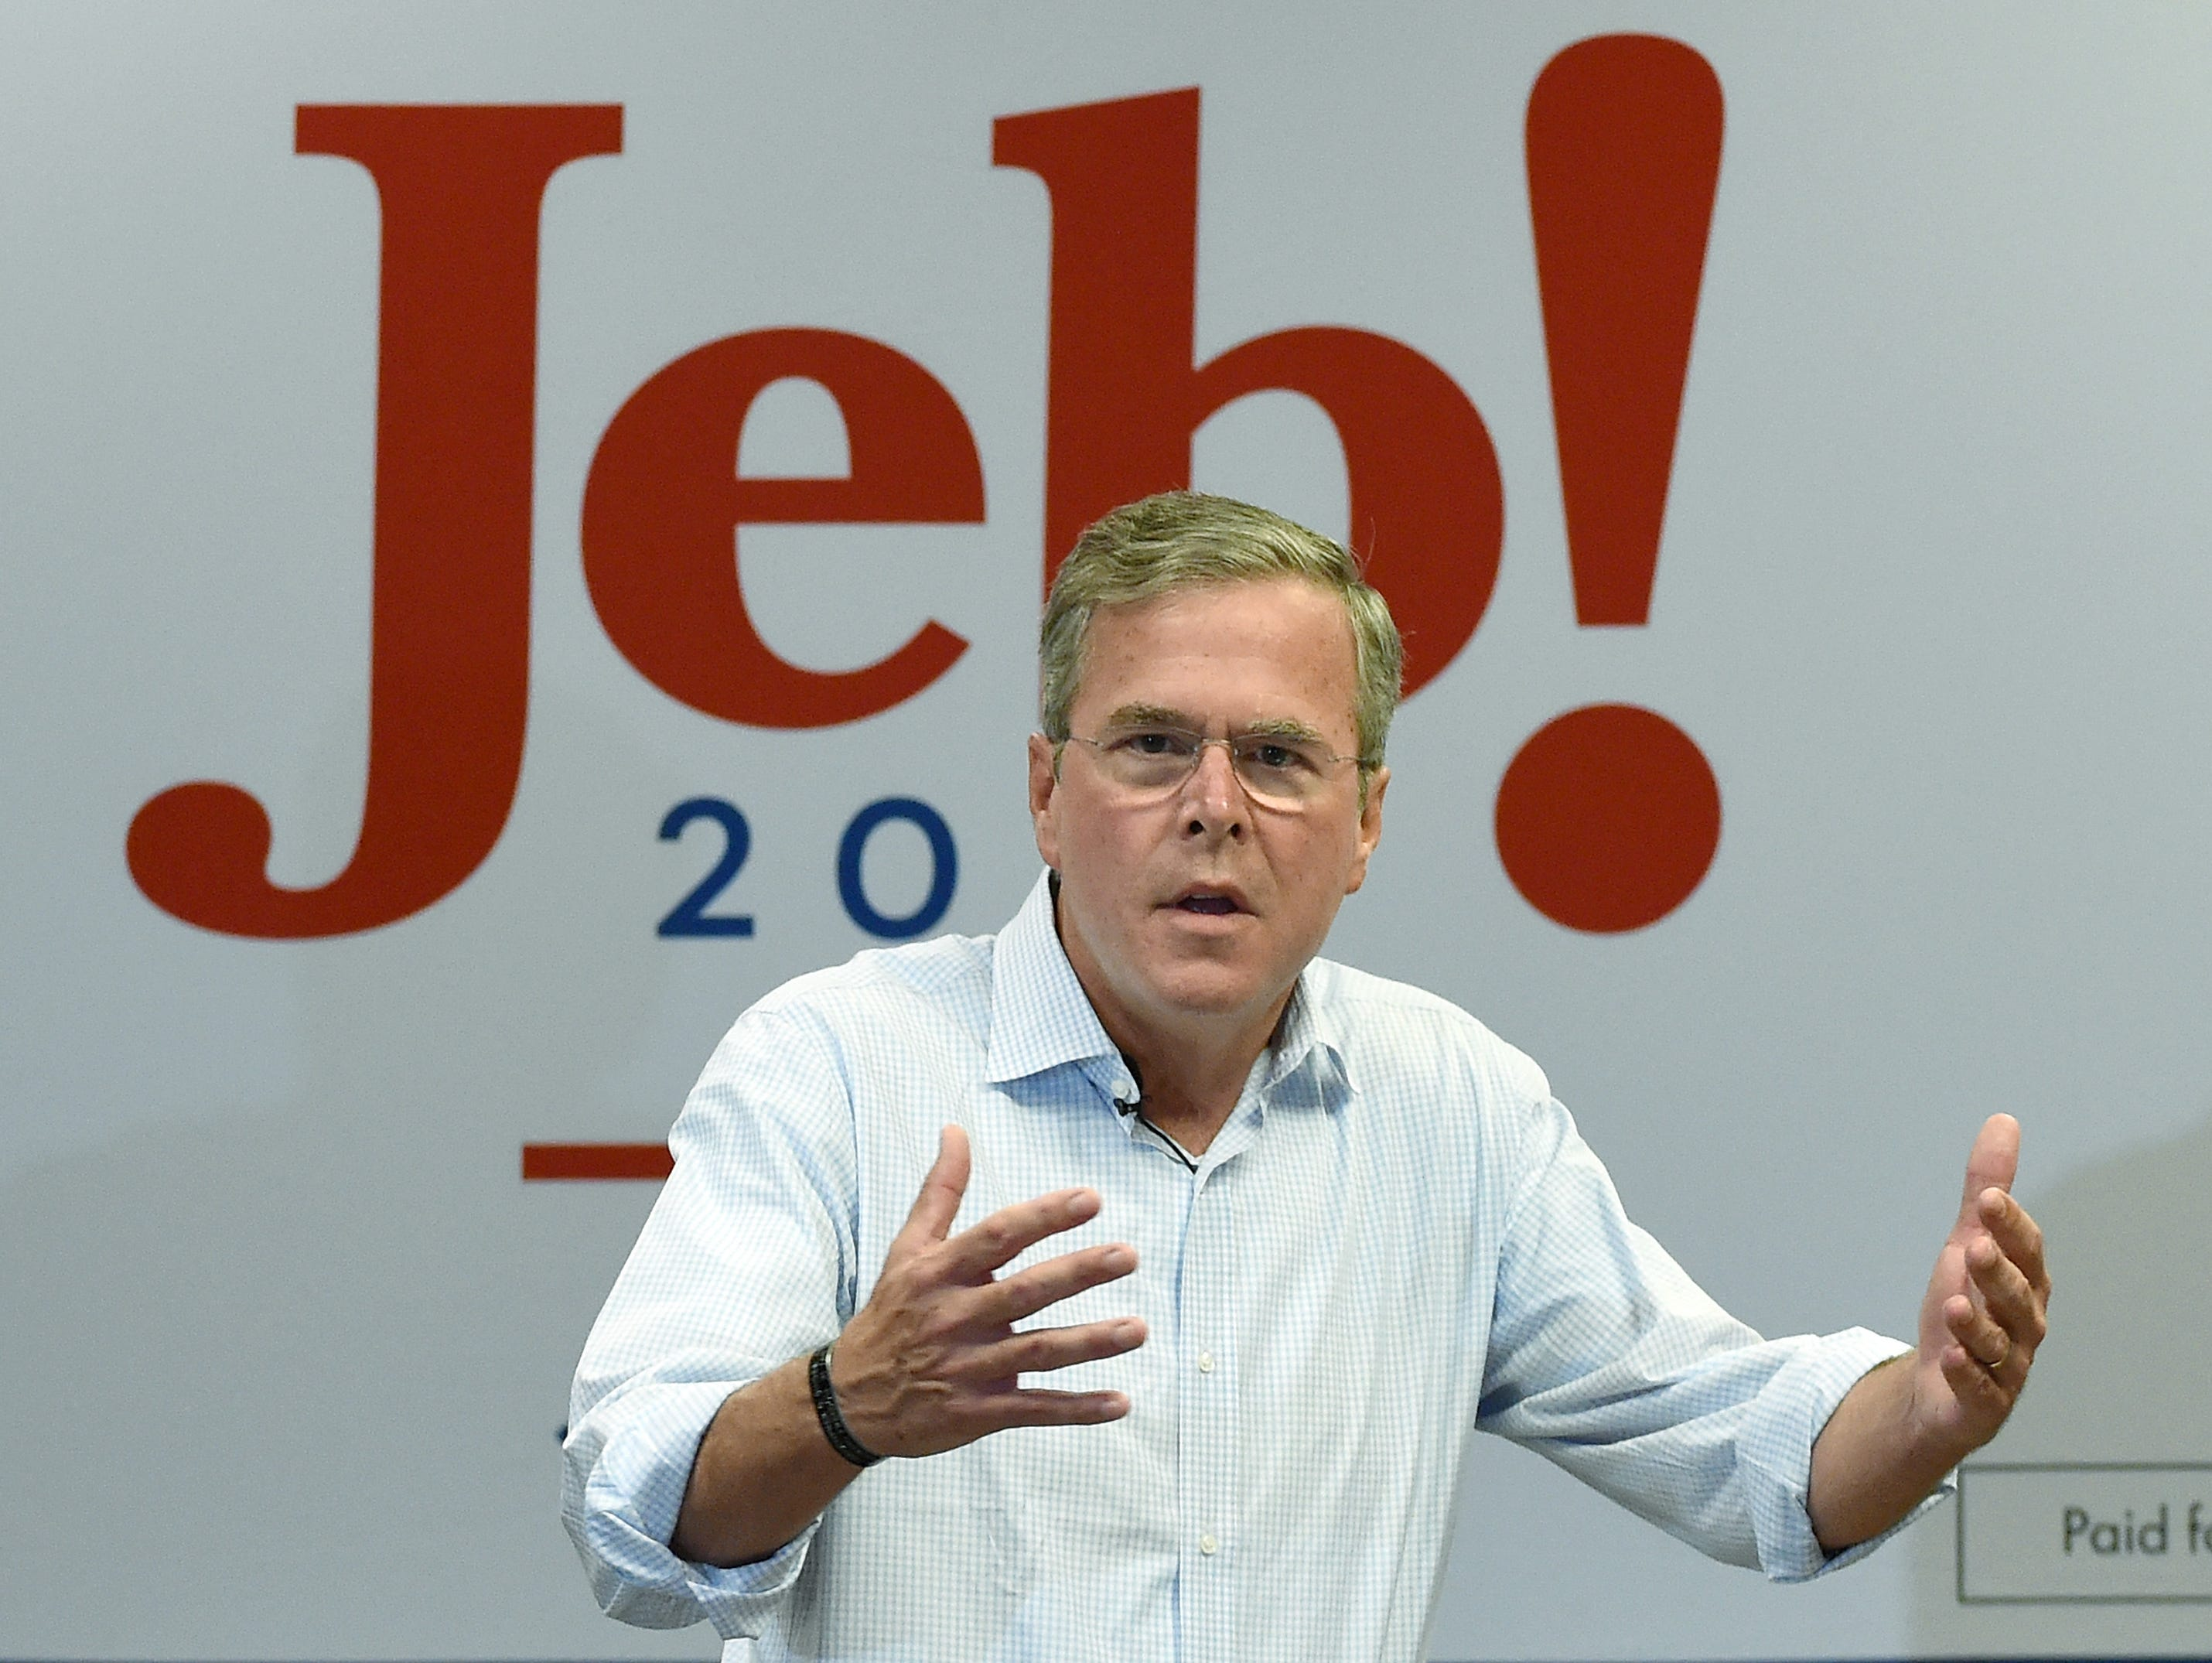 Republican presidential candidate Jeb Bush will be in Knoxville this weekend.